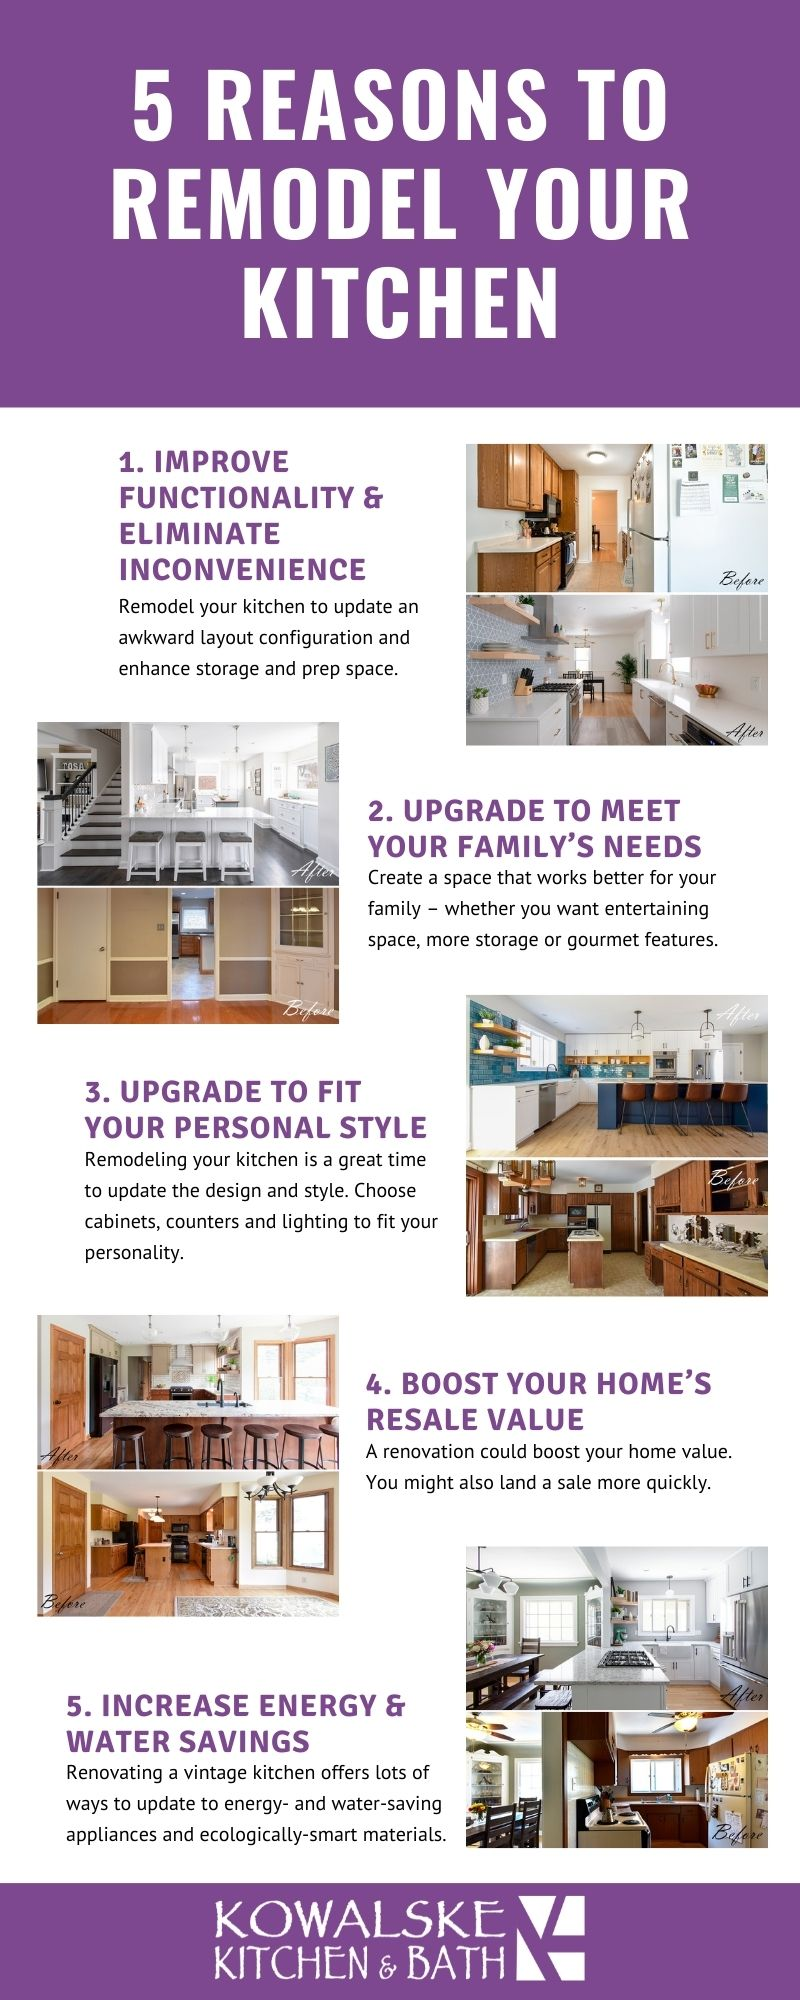 reasons to remodel kitchen